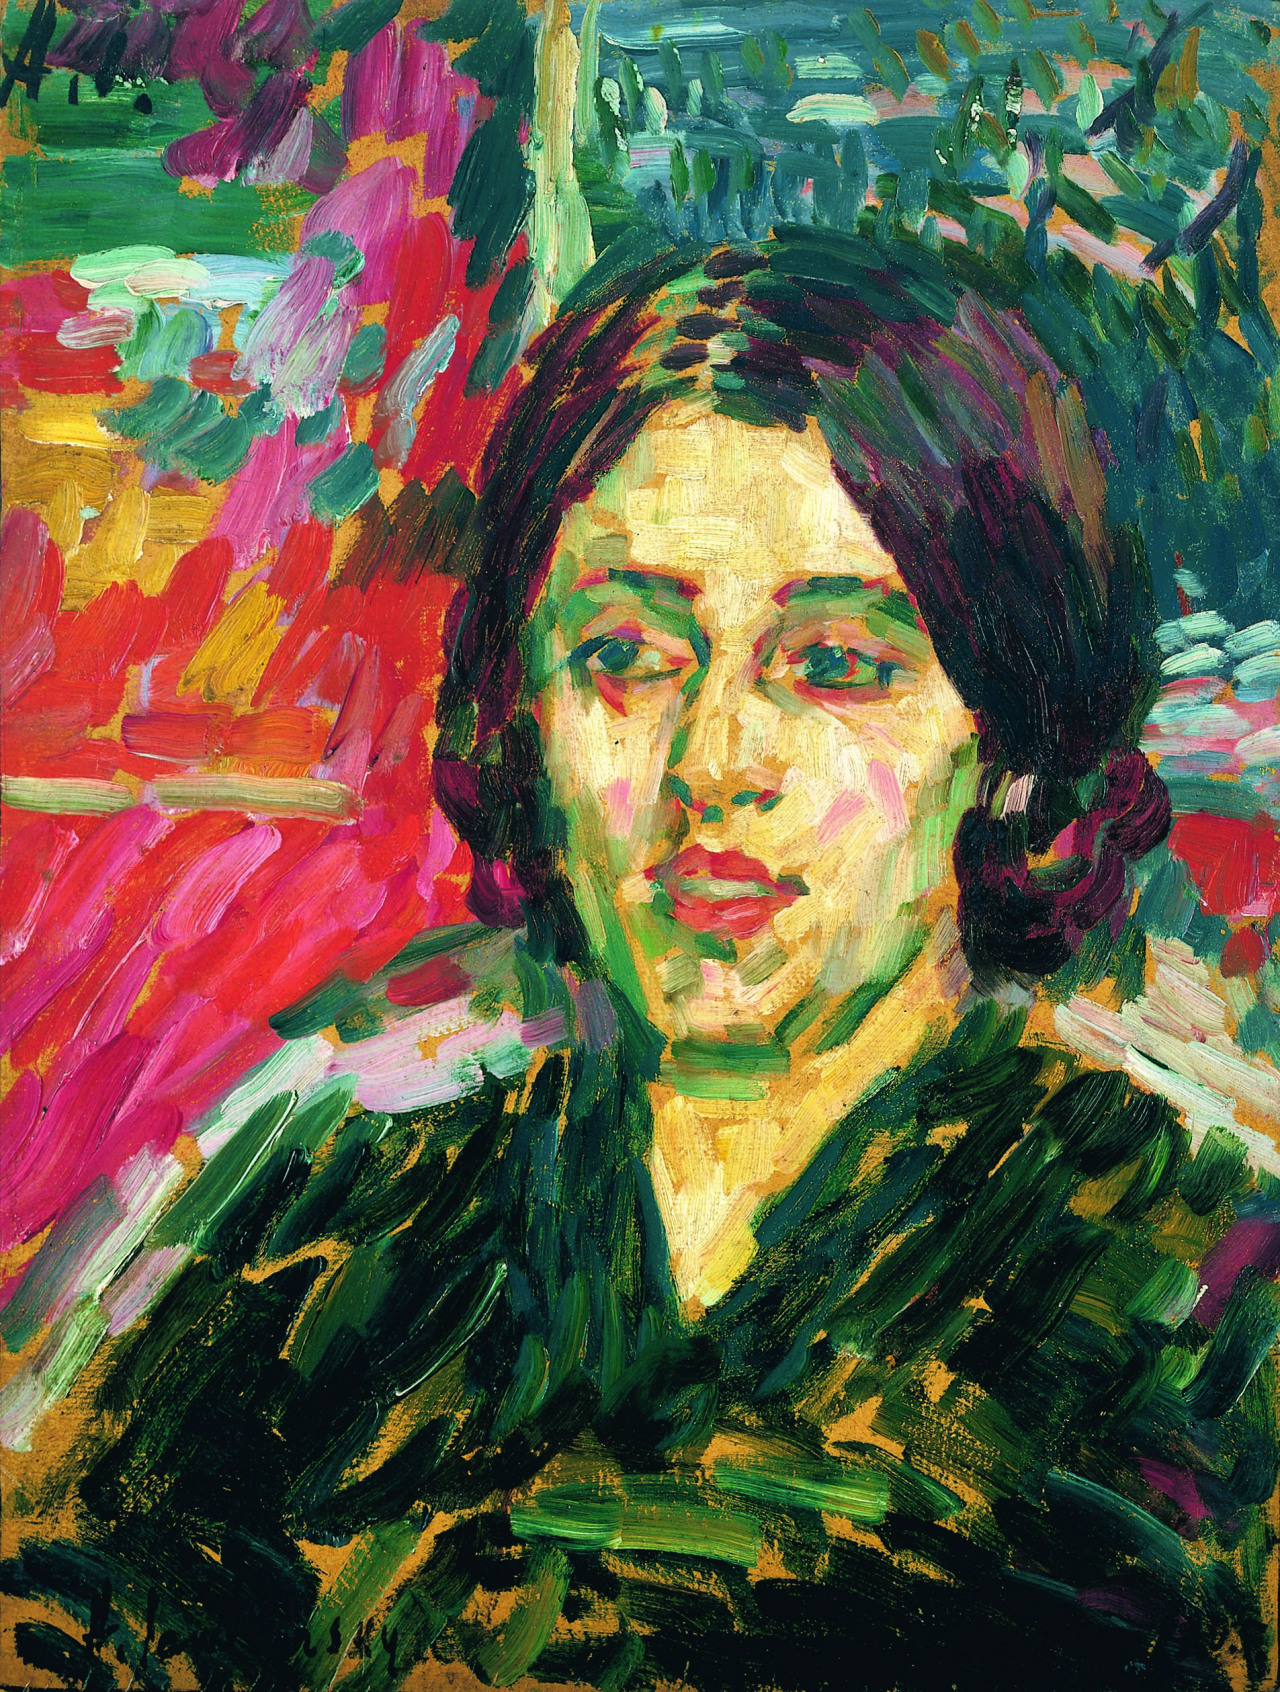 amare-habeo:  Alexej von Jawlensky (Russian-German, 1864-1941) Madame Curie I, 1905oil on canvas, 50 x 38